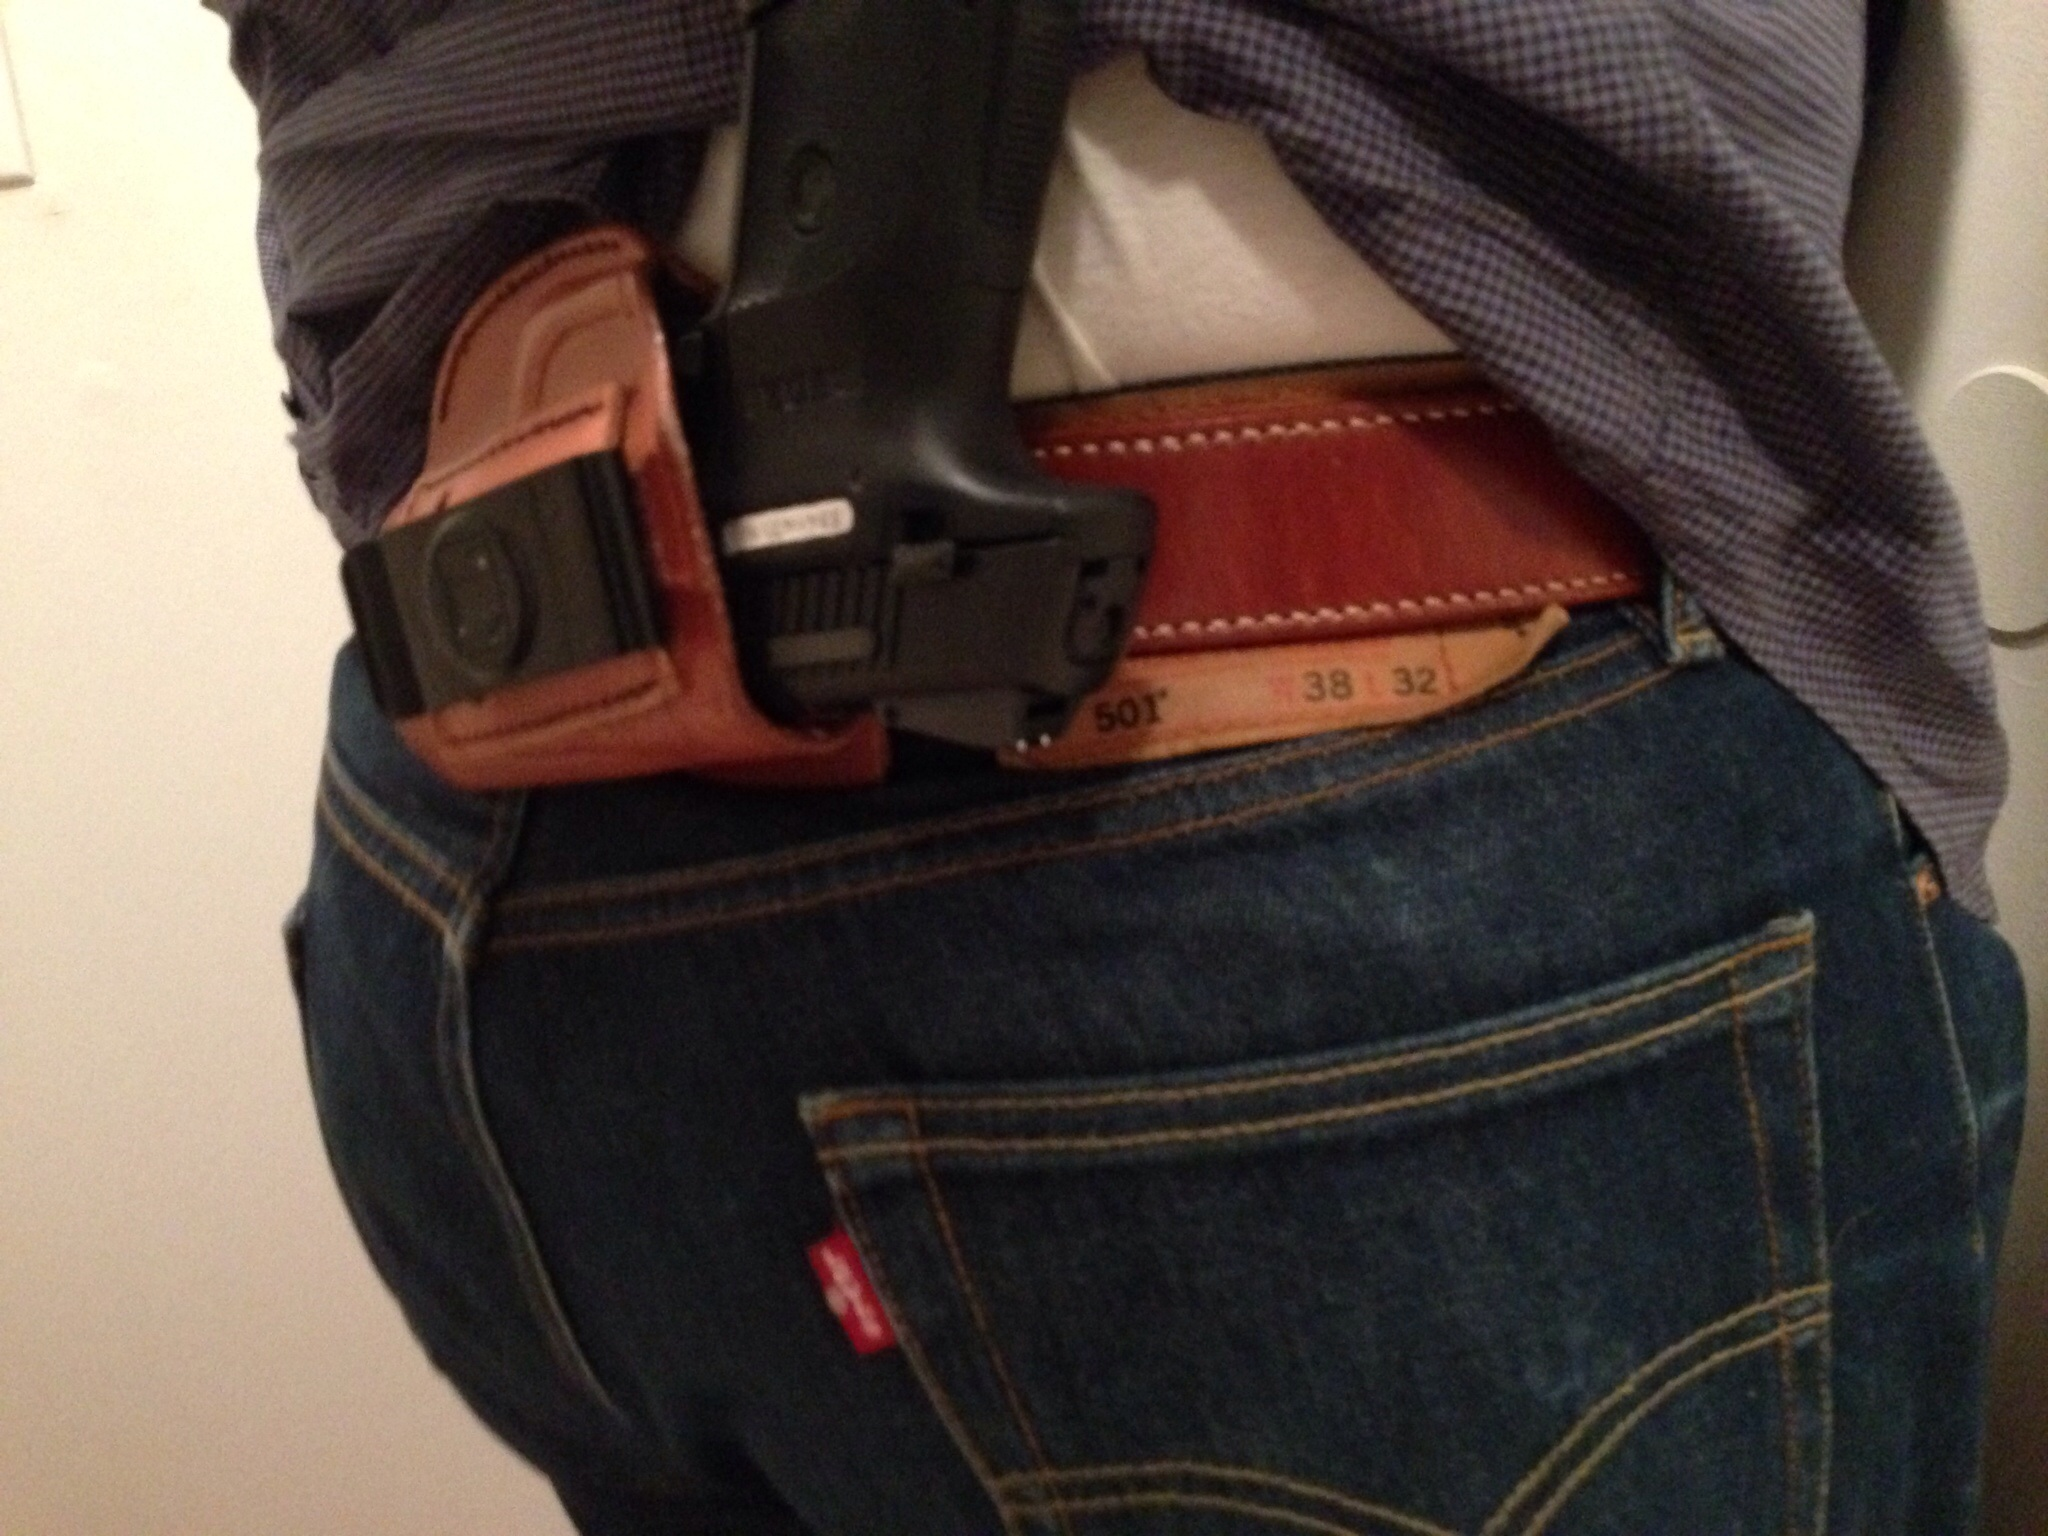 Tagua 4-in-1 leather holster    Anyone used these?